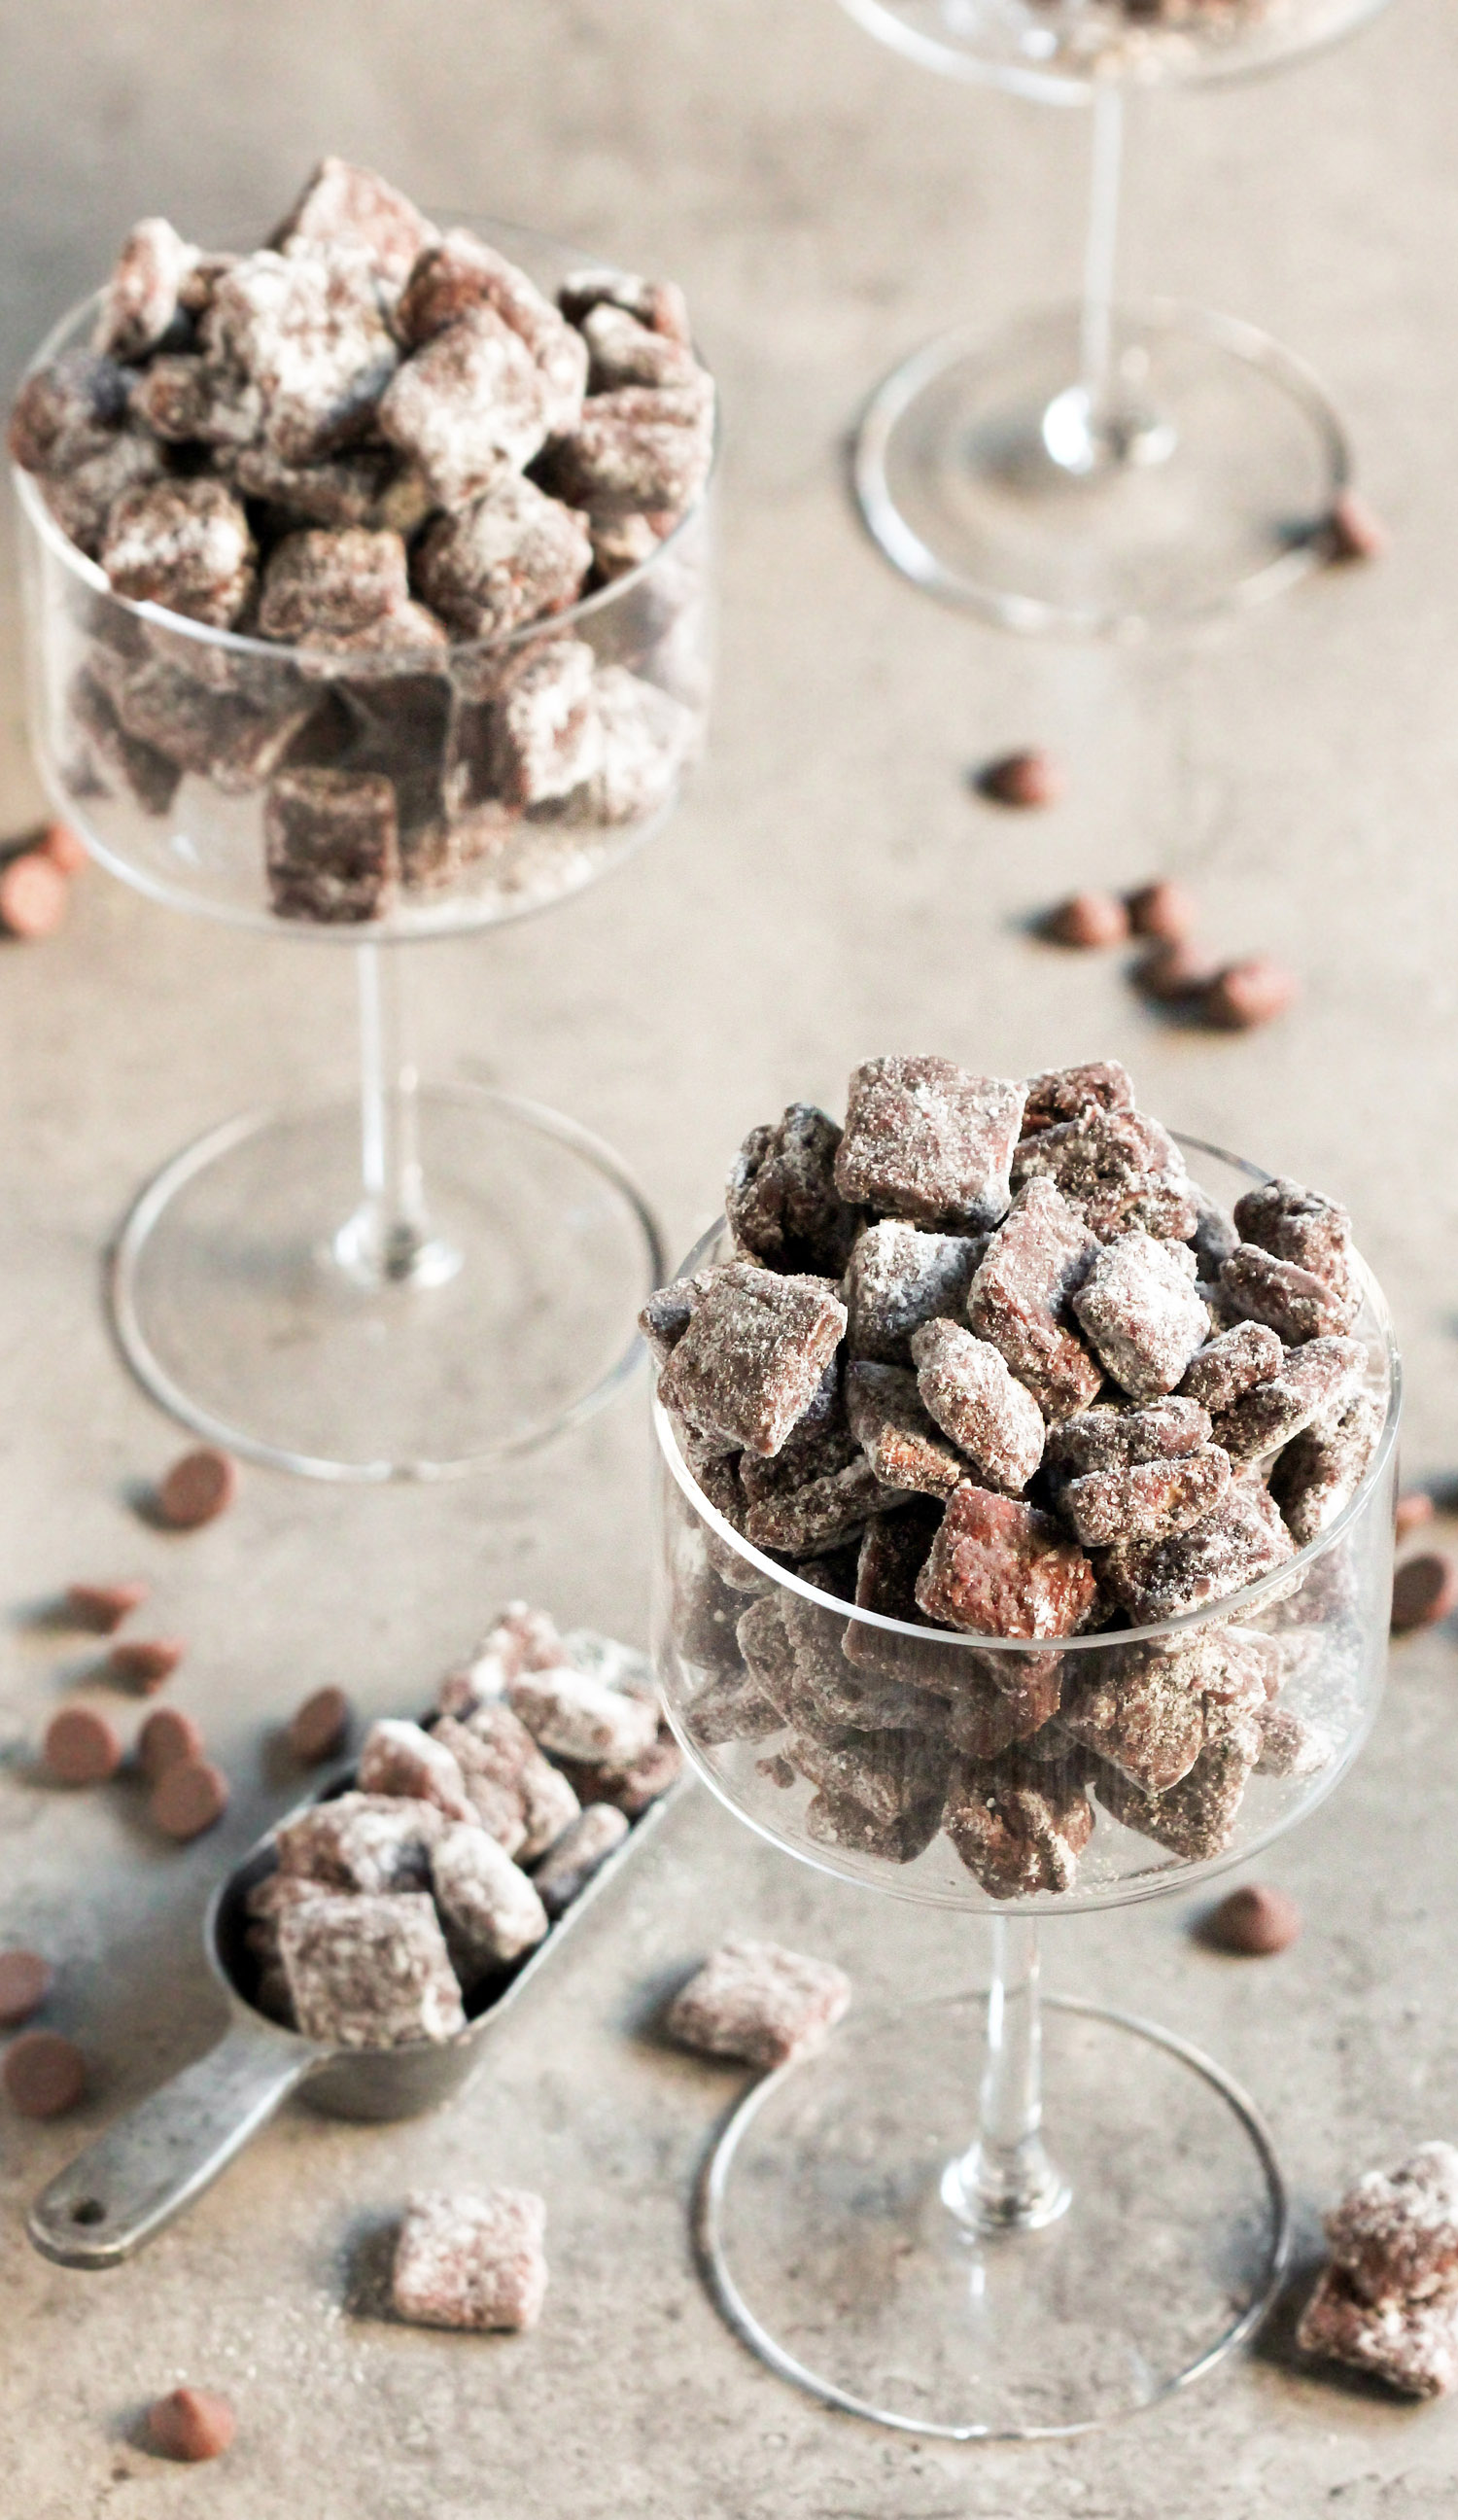 These Healthy Muddy Buddies (or Healthy Puppy Chow, whatever you like to call it!) are the PERFECT snack! Crunchy, sweet, chocolatey, peanut buttery, and delicious. You'd never know it's got half the calories and fat as the original, a fraction of the sugar, and is dairy free and vegan too! Healthy Dessert Recipes at the Desserts With Benefits Blog (www.DessertsWithBenefits.com)